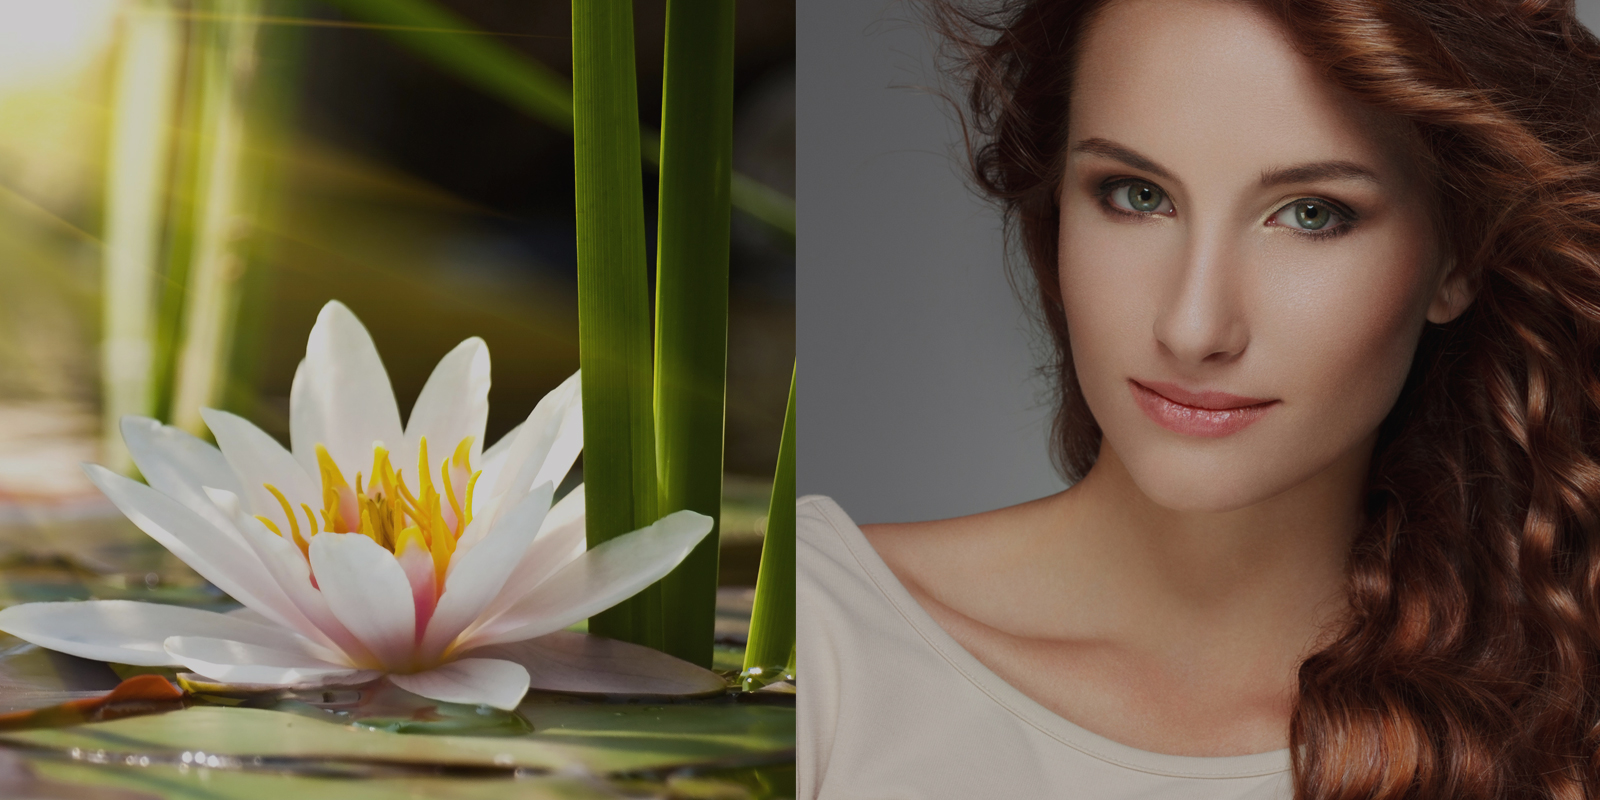 Smile Lift facial aesthetics treatment for a more youthful appearance in Clearwater, FL